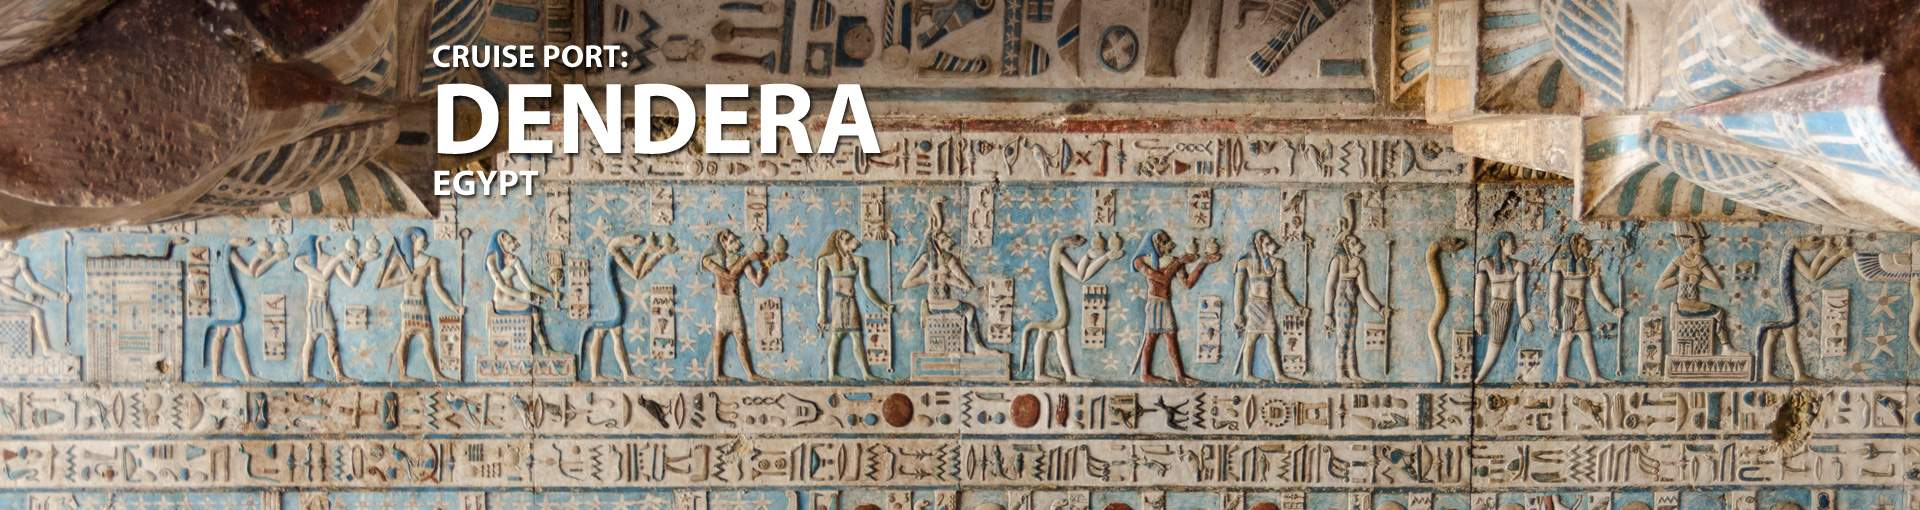 Cruises to Dendera, Egypt